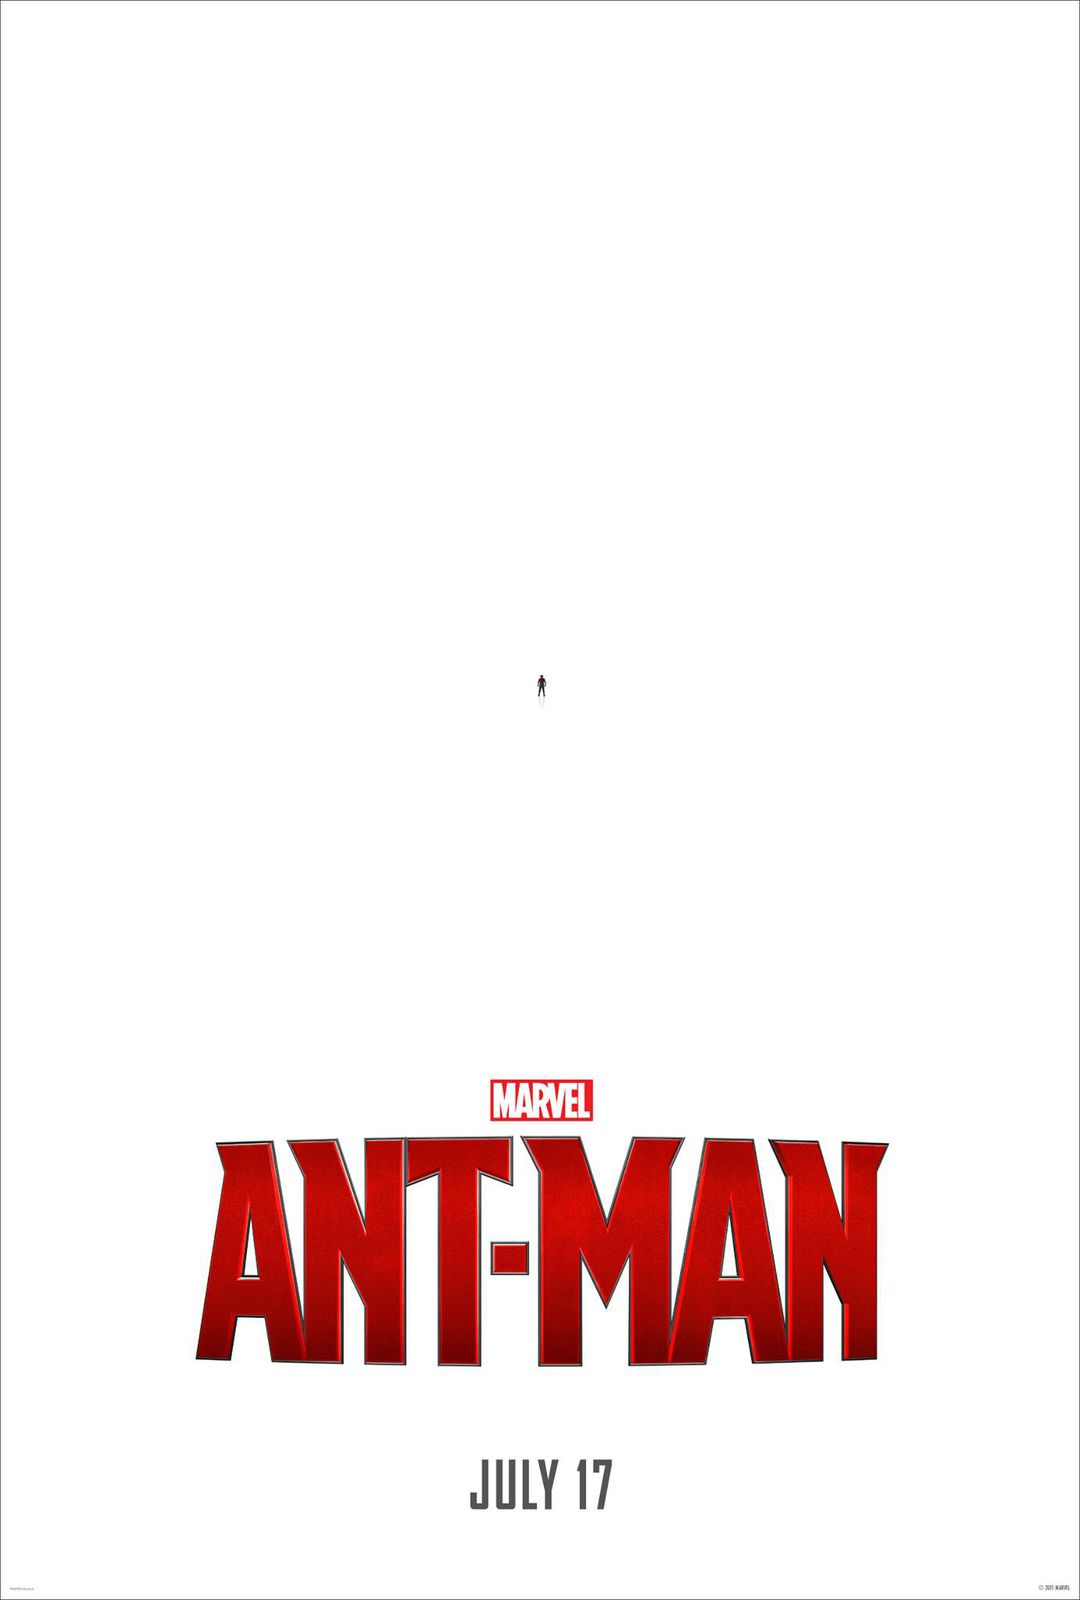 Ant-Man 1° poster officiel